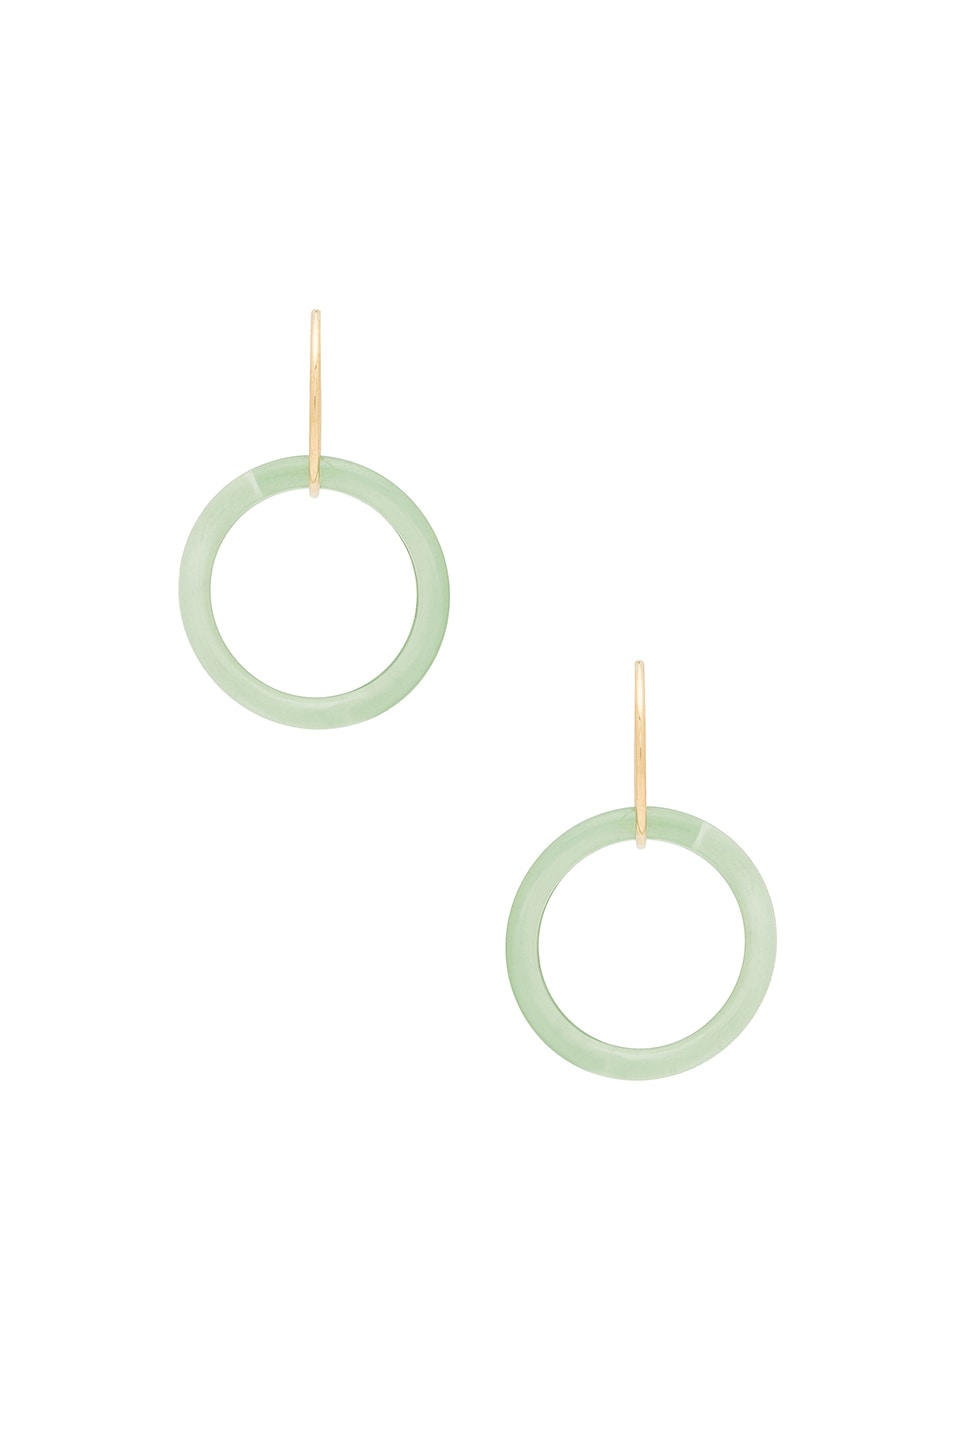 Acrylic Ring Hoops